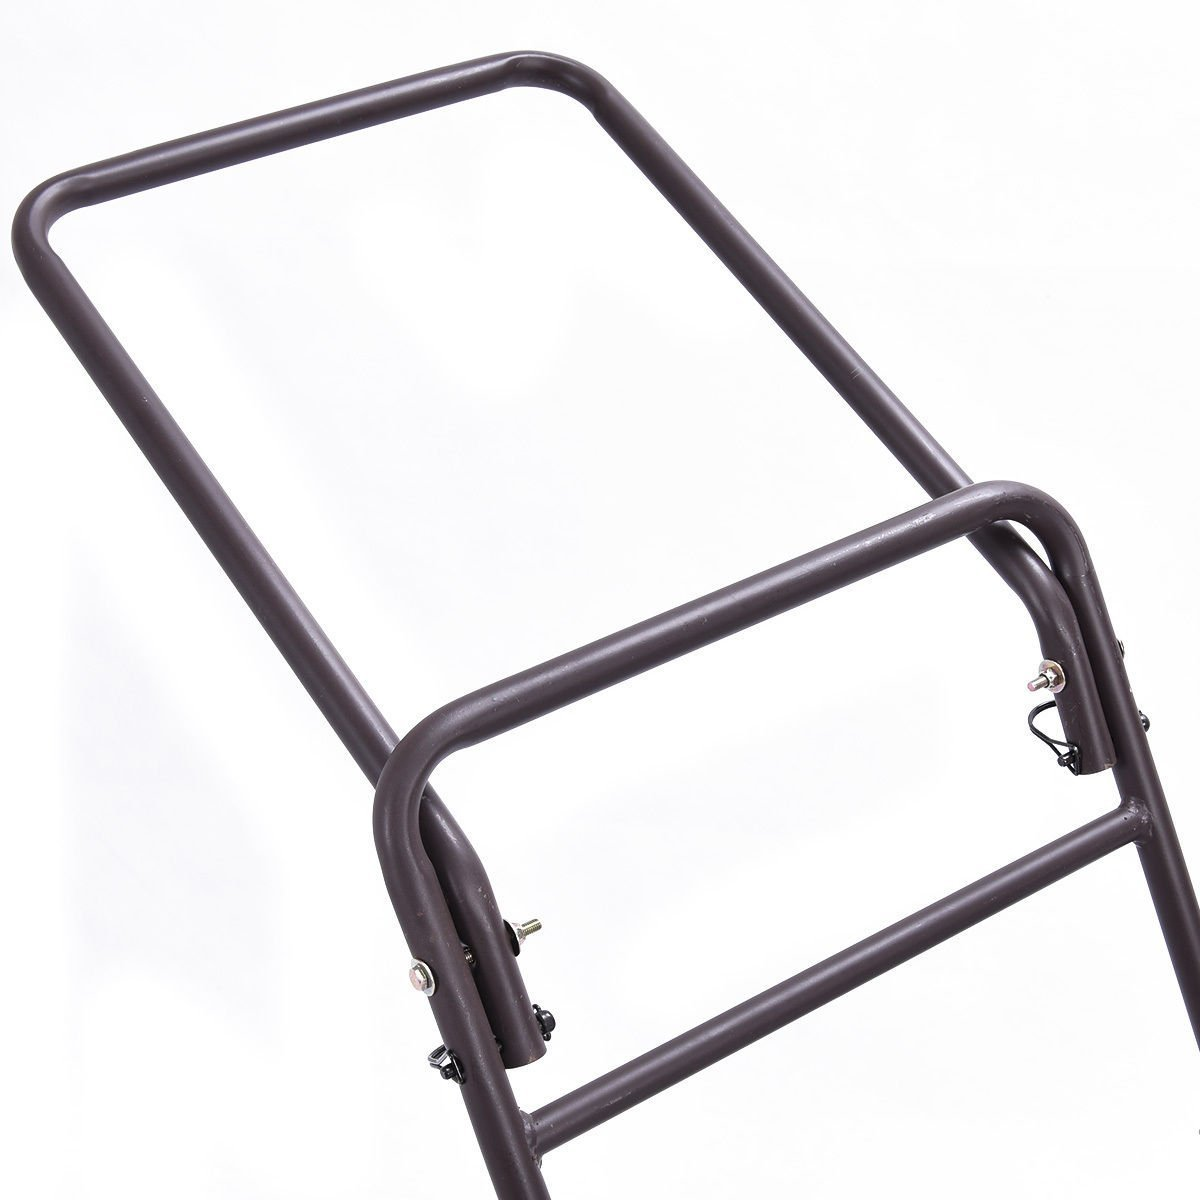 Goplus Folding Deer Game Cart Larger Capacity 500lbs Hauler Utility Gear Dolly Cart Hunting Accessories by Goplus (Image #8)